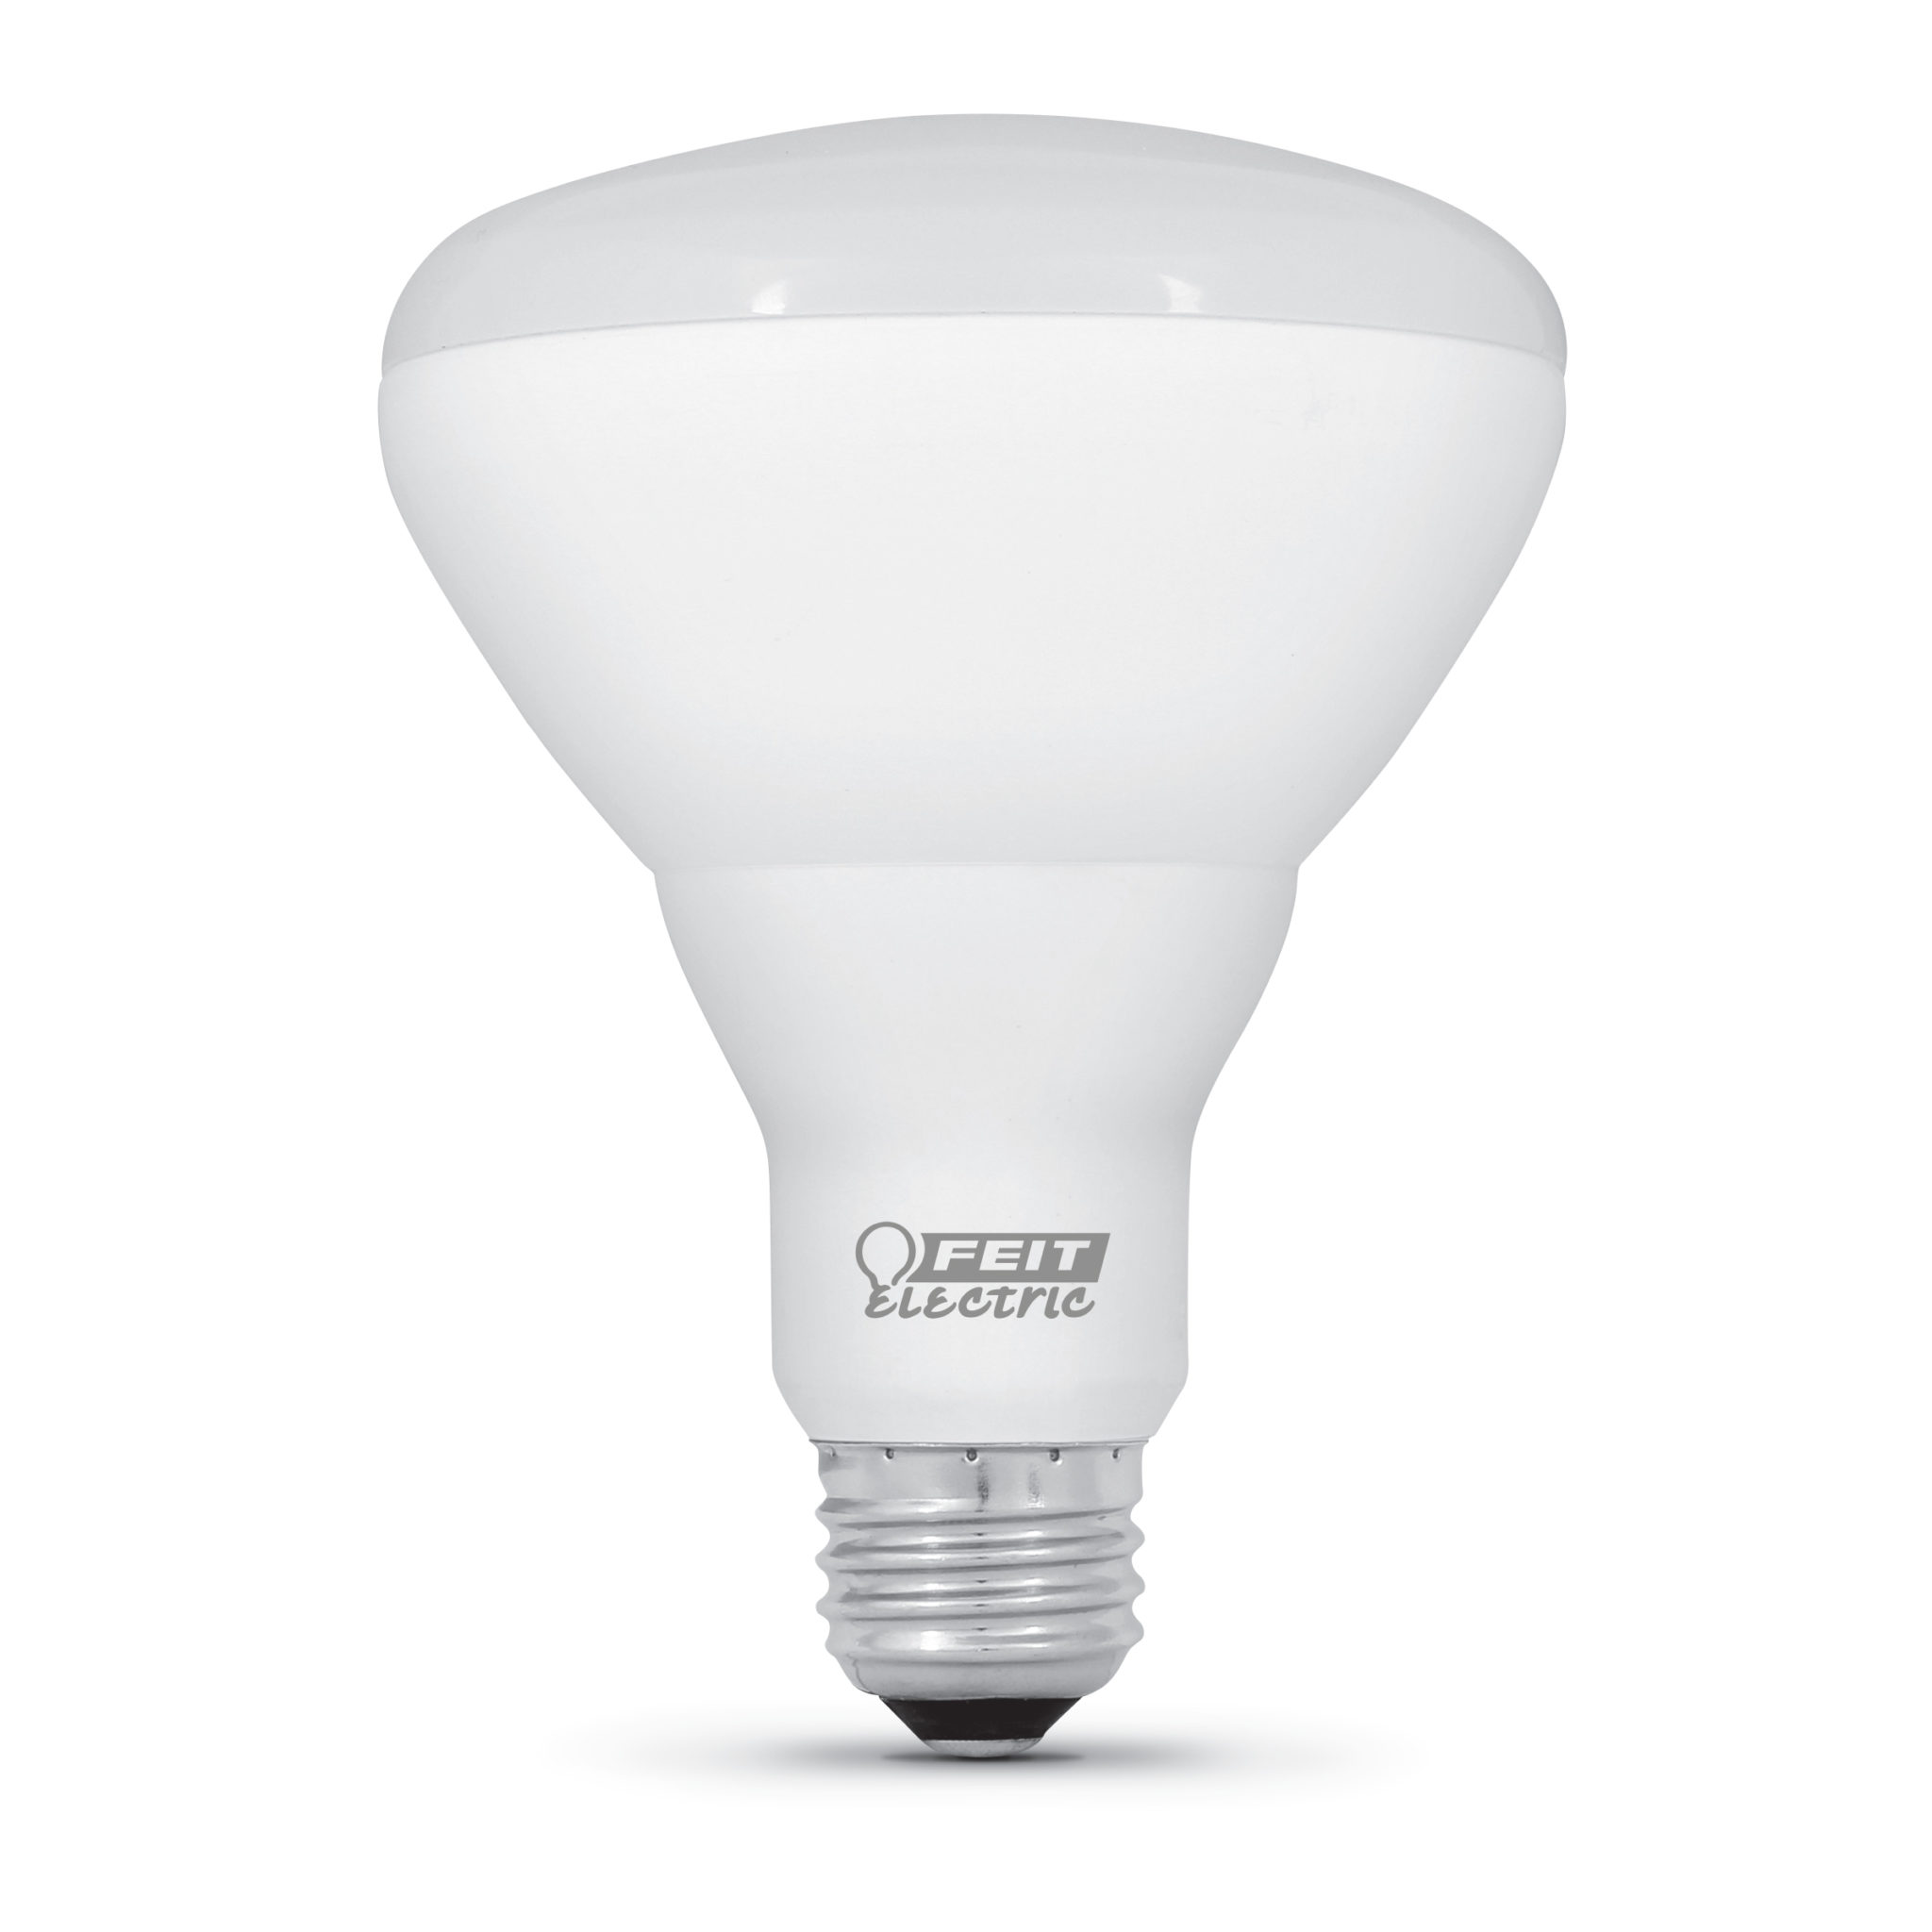 650 Lumen 5000k Dimmable Br30 Led Feit Electric